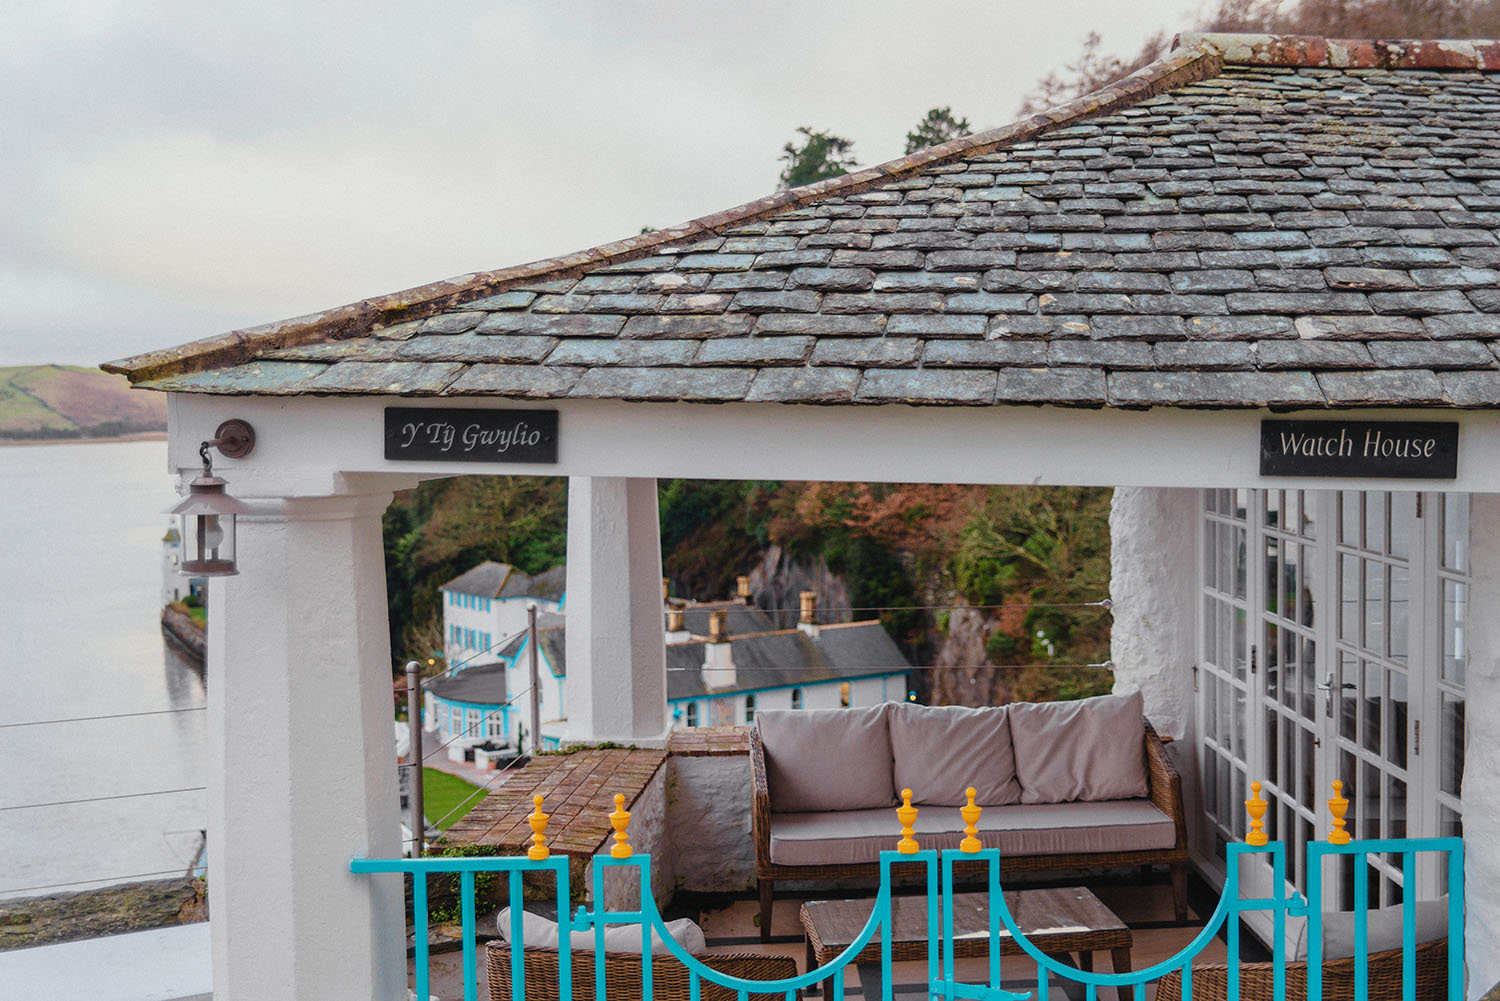 Watch House in Portmeirion